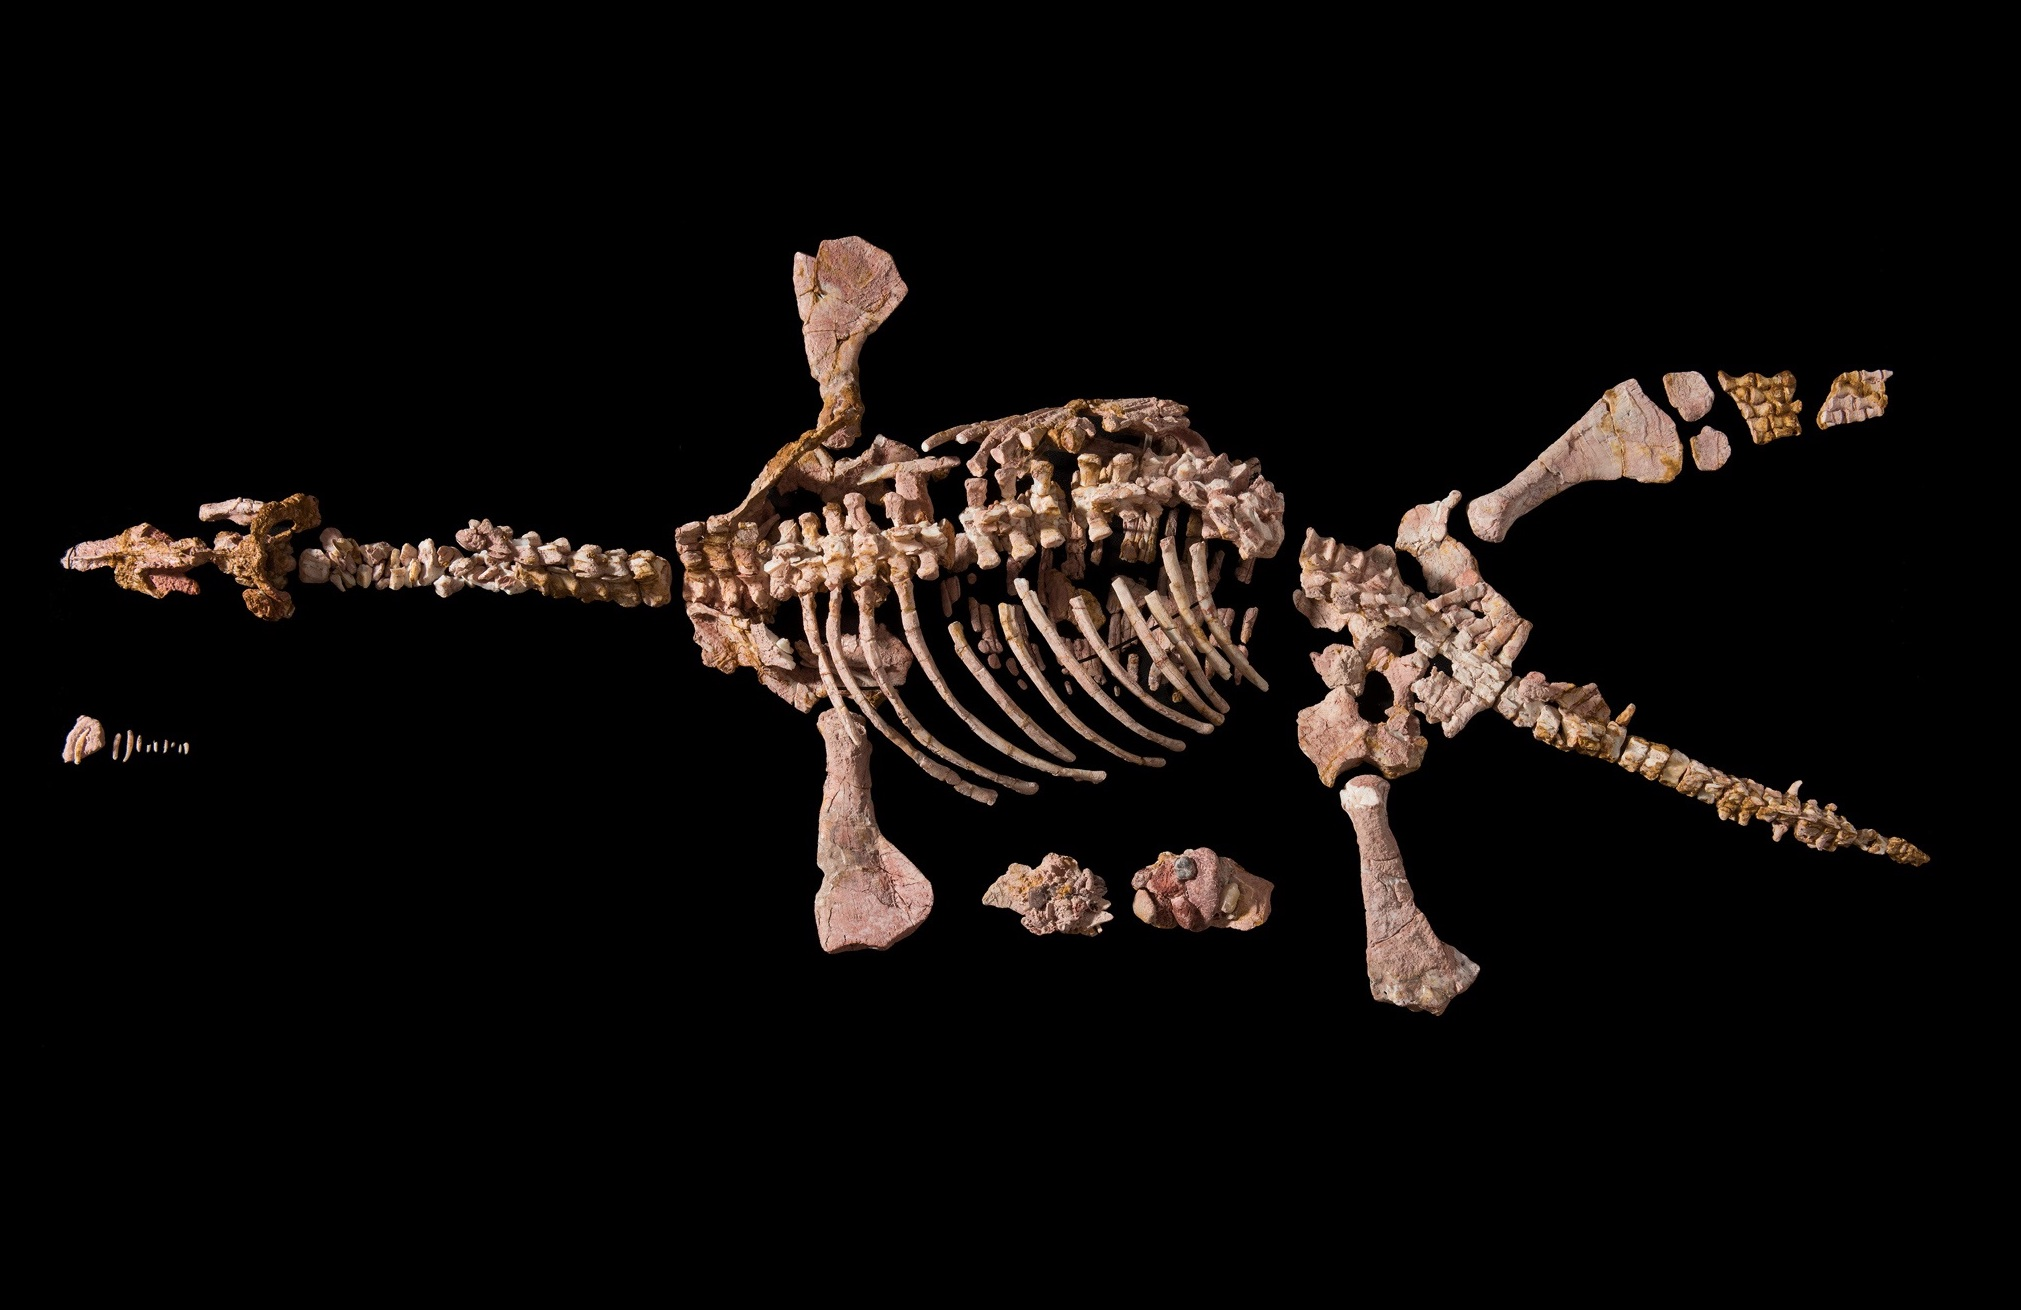 The opalized remains of Eric, a pliosaur from the Mesozoic Era, were discovered in 1987 by an opal miner at Coober Pedy, South Australia. Today they're displayed at the Australian Museum in Sydney.